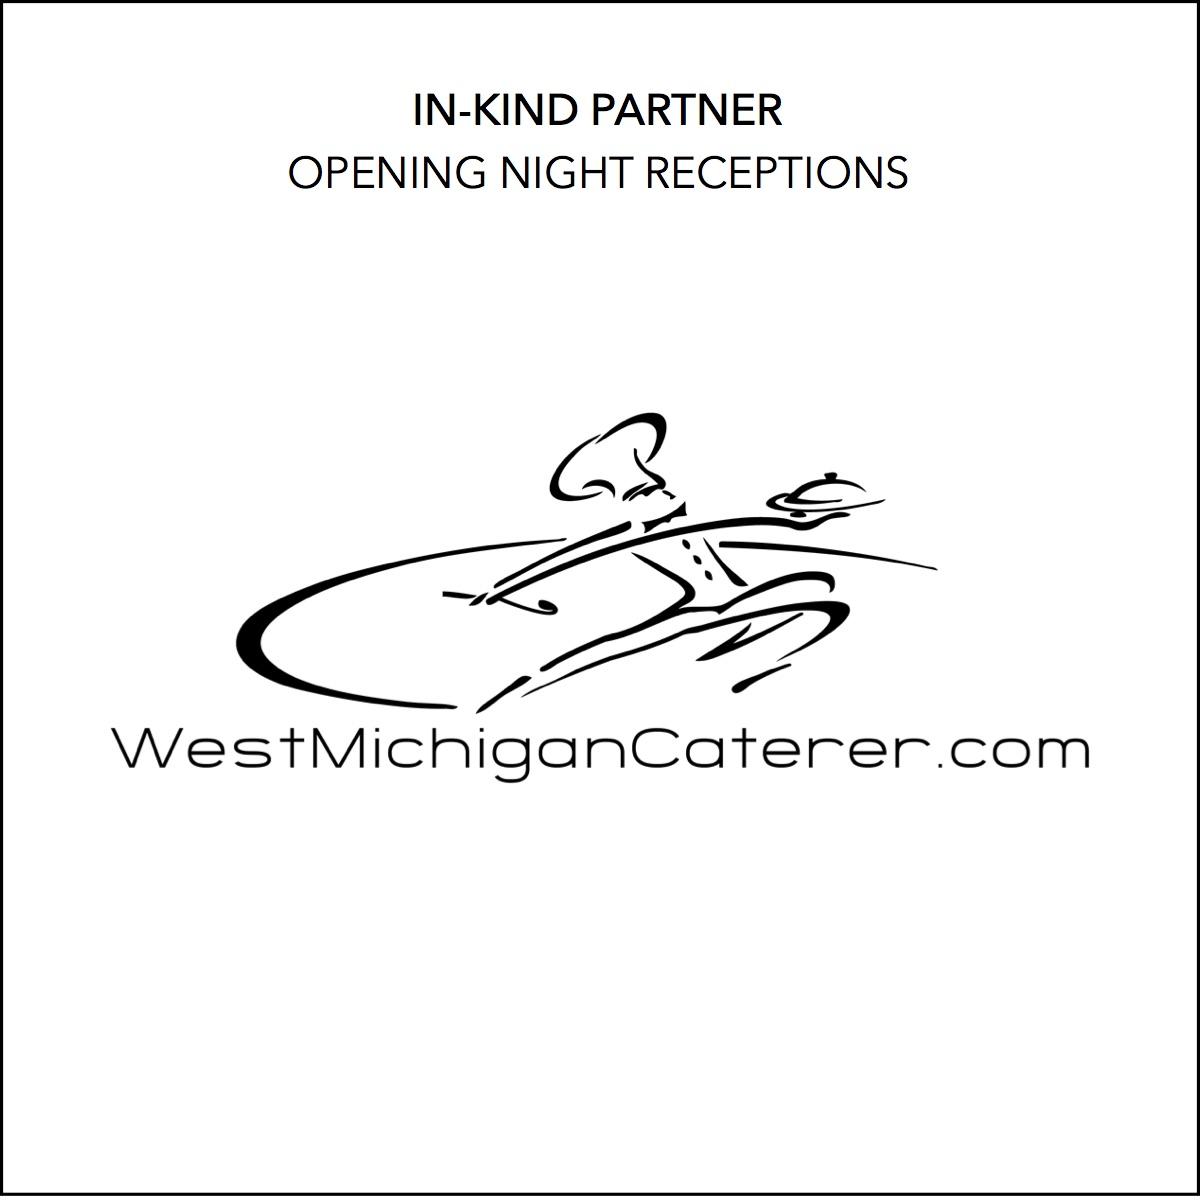 West Michigan Caterer